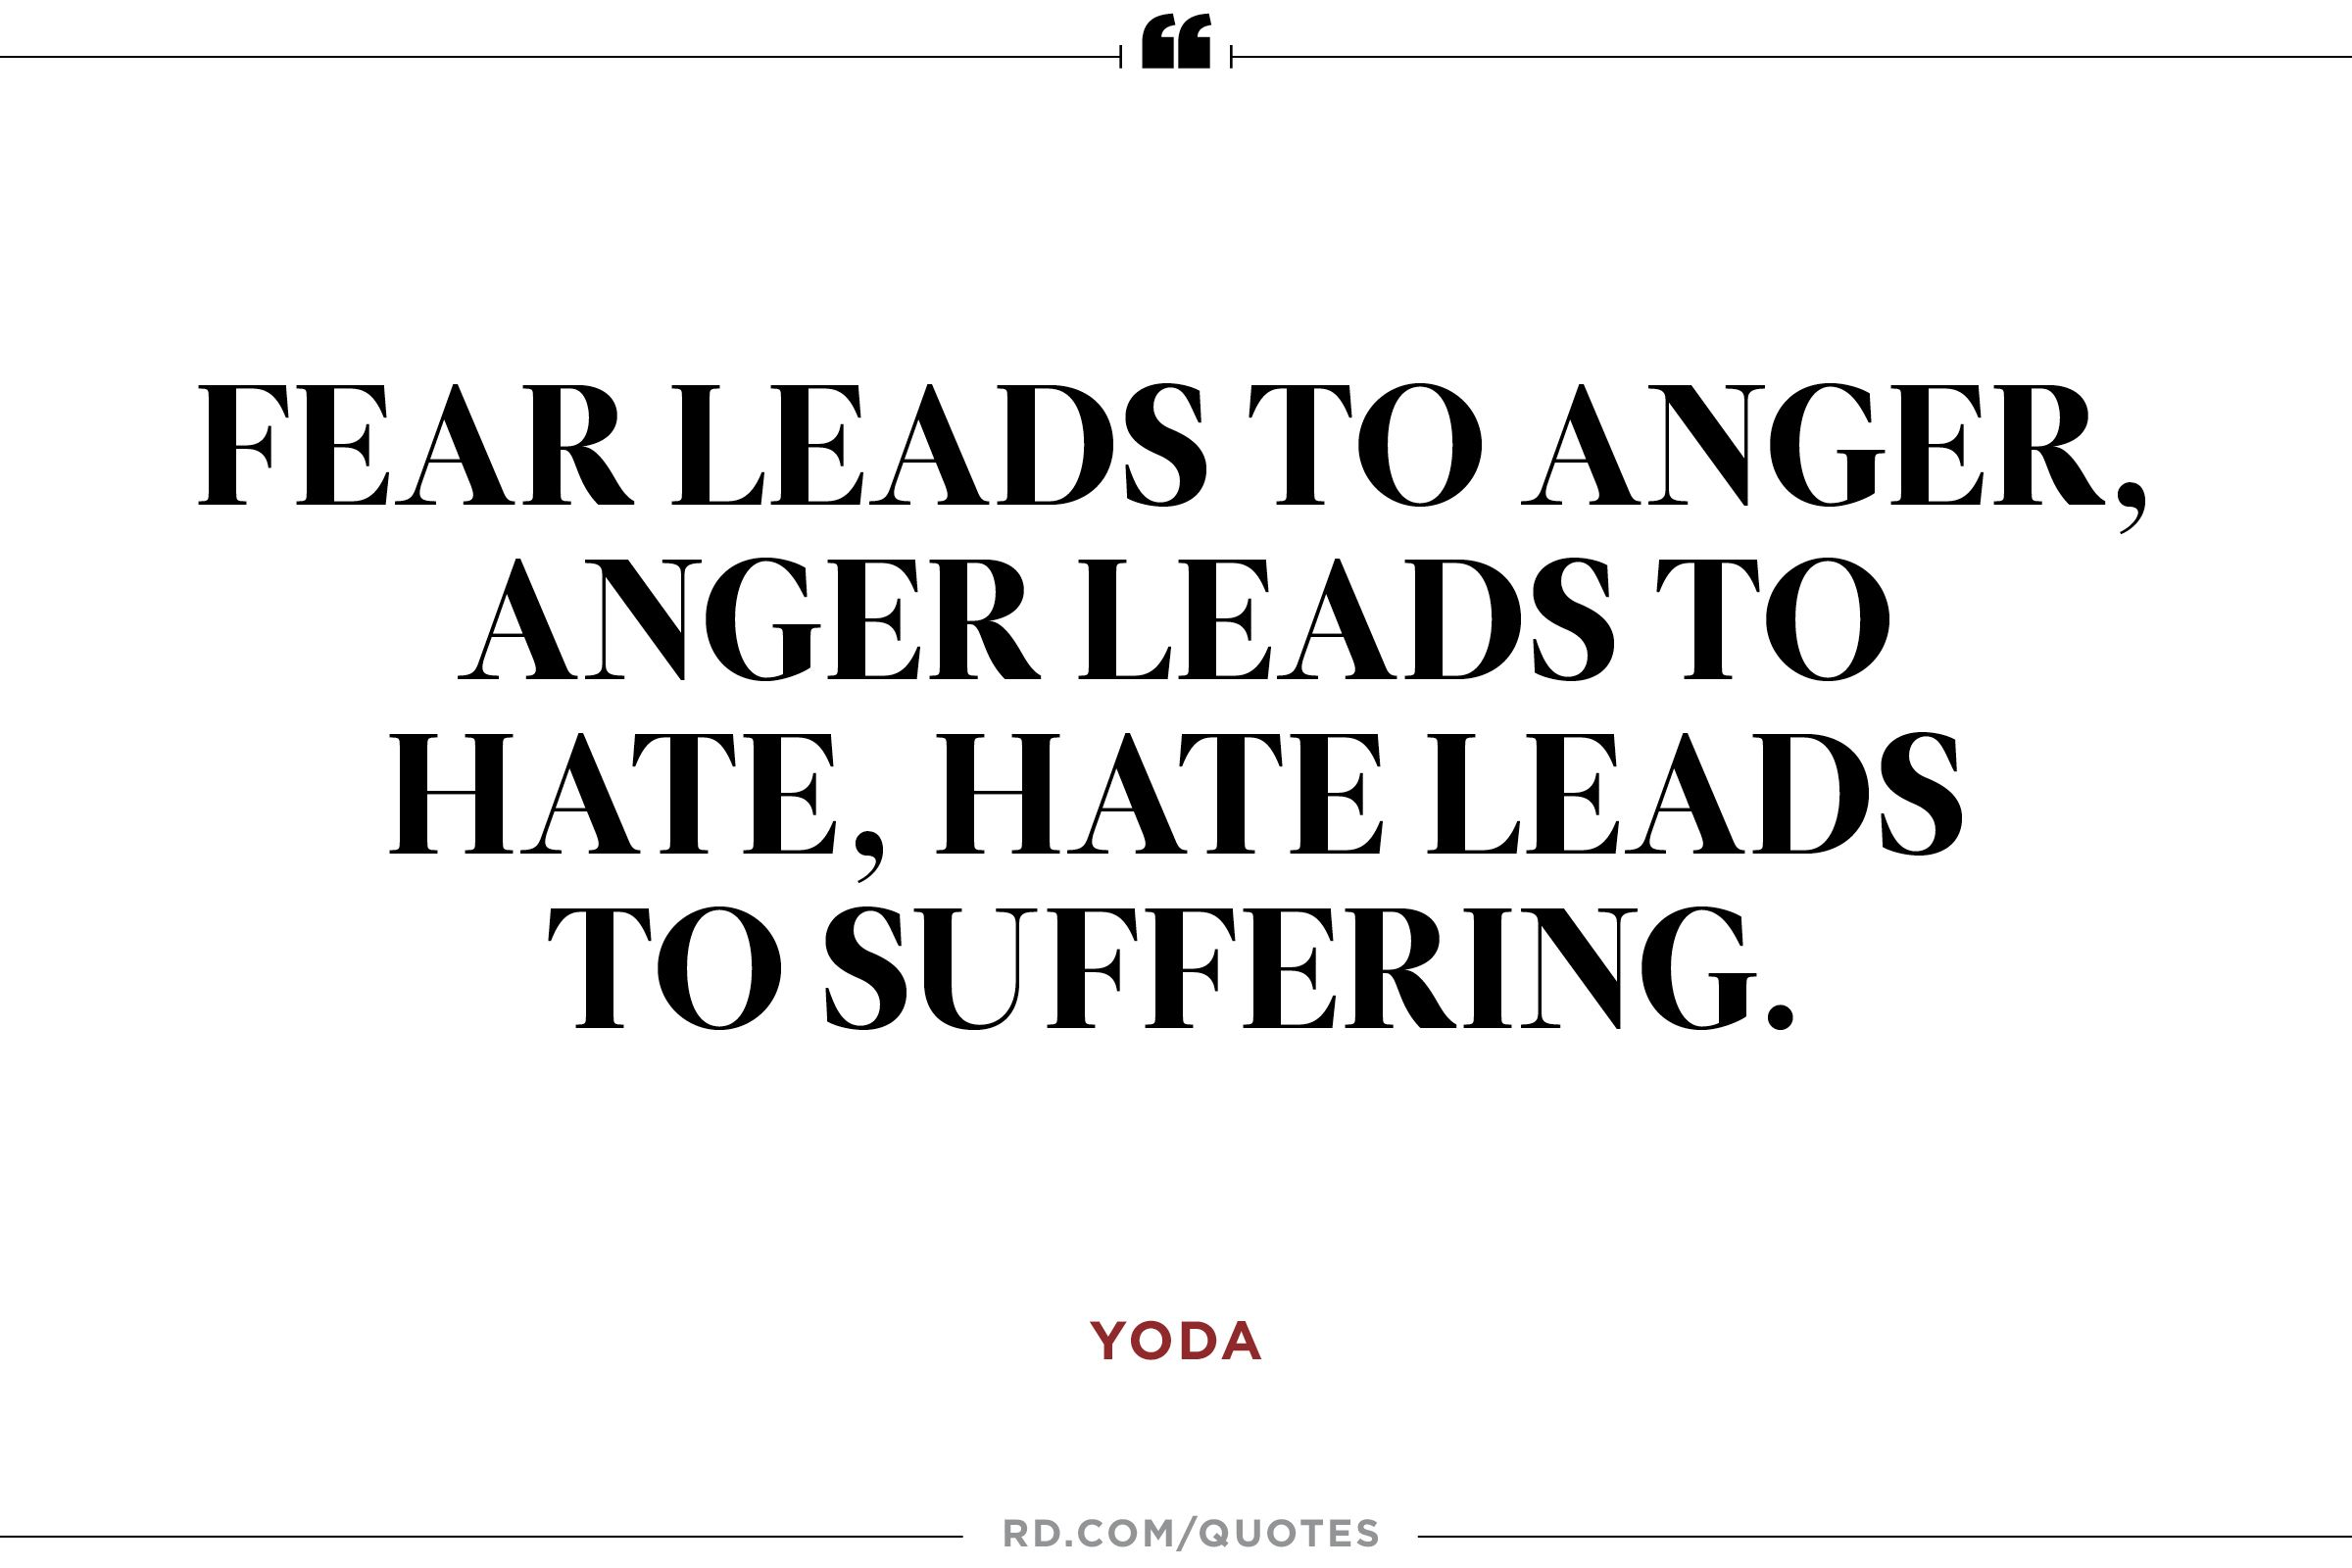 Star Wars Quotes 20 Star Wars Quotes Every Fan Should Know  Star Wars Quotes Wisdom .